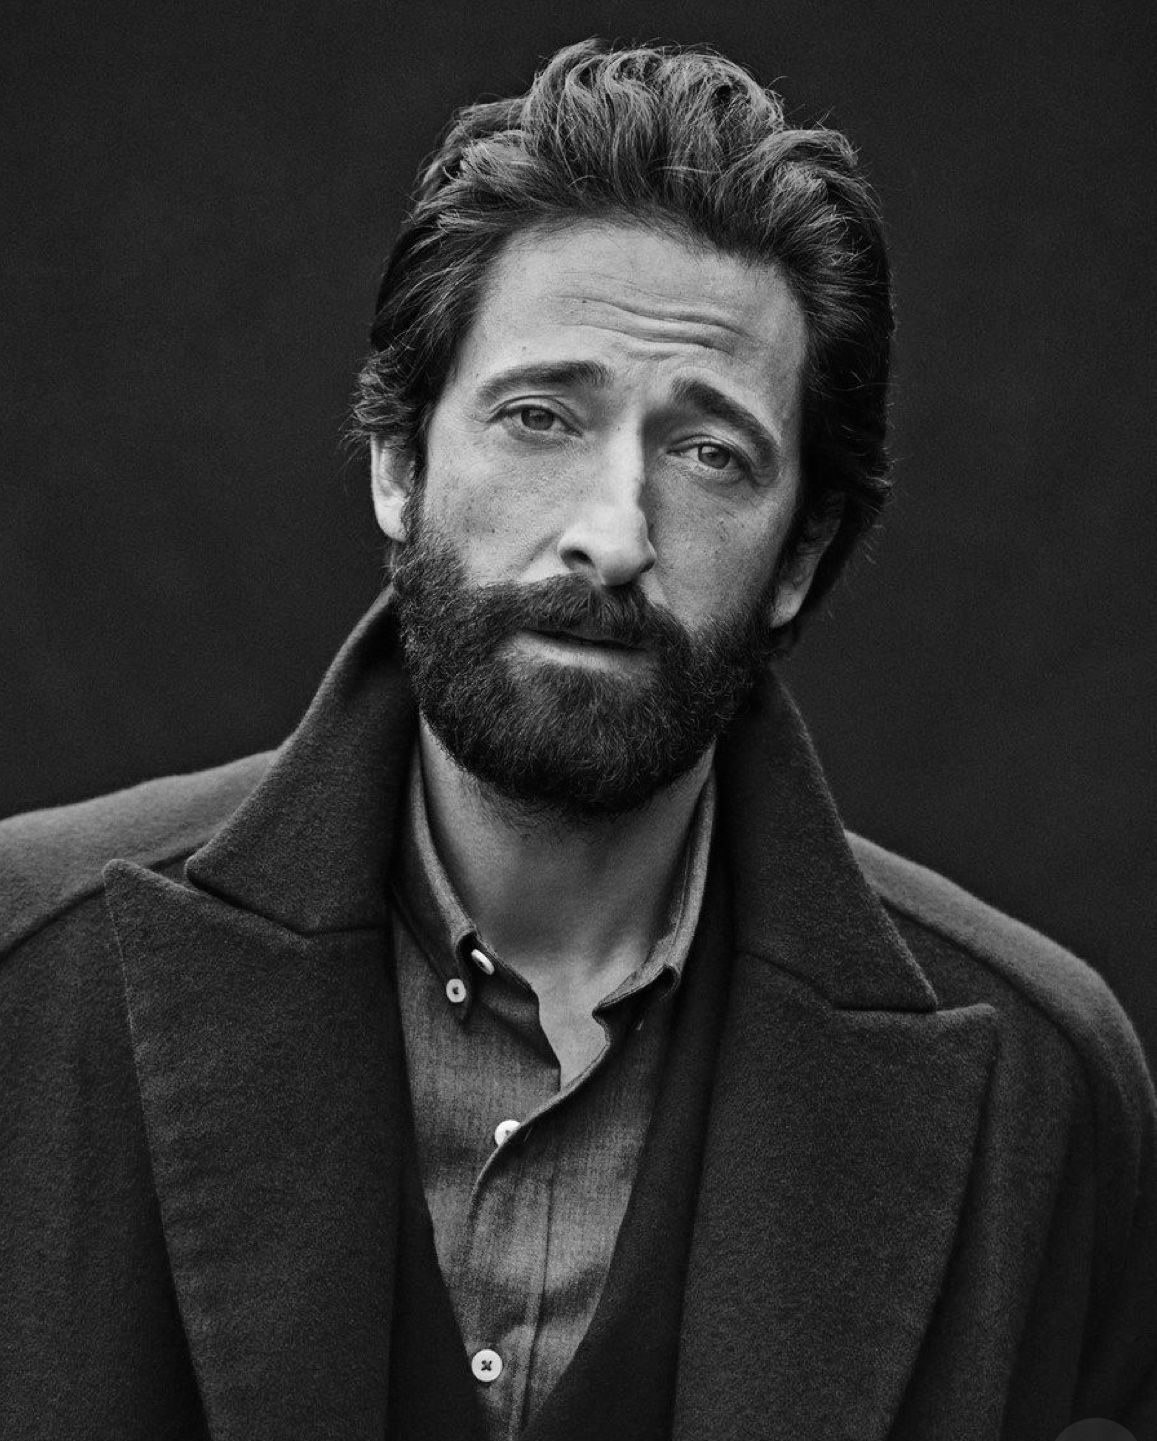 Pin by Dawn on Leading Men in 2019 Adrien brody, Epic beard, Actor